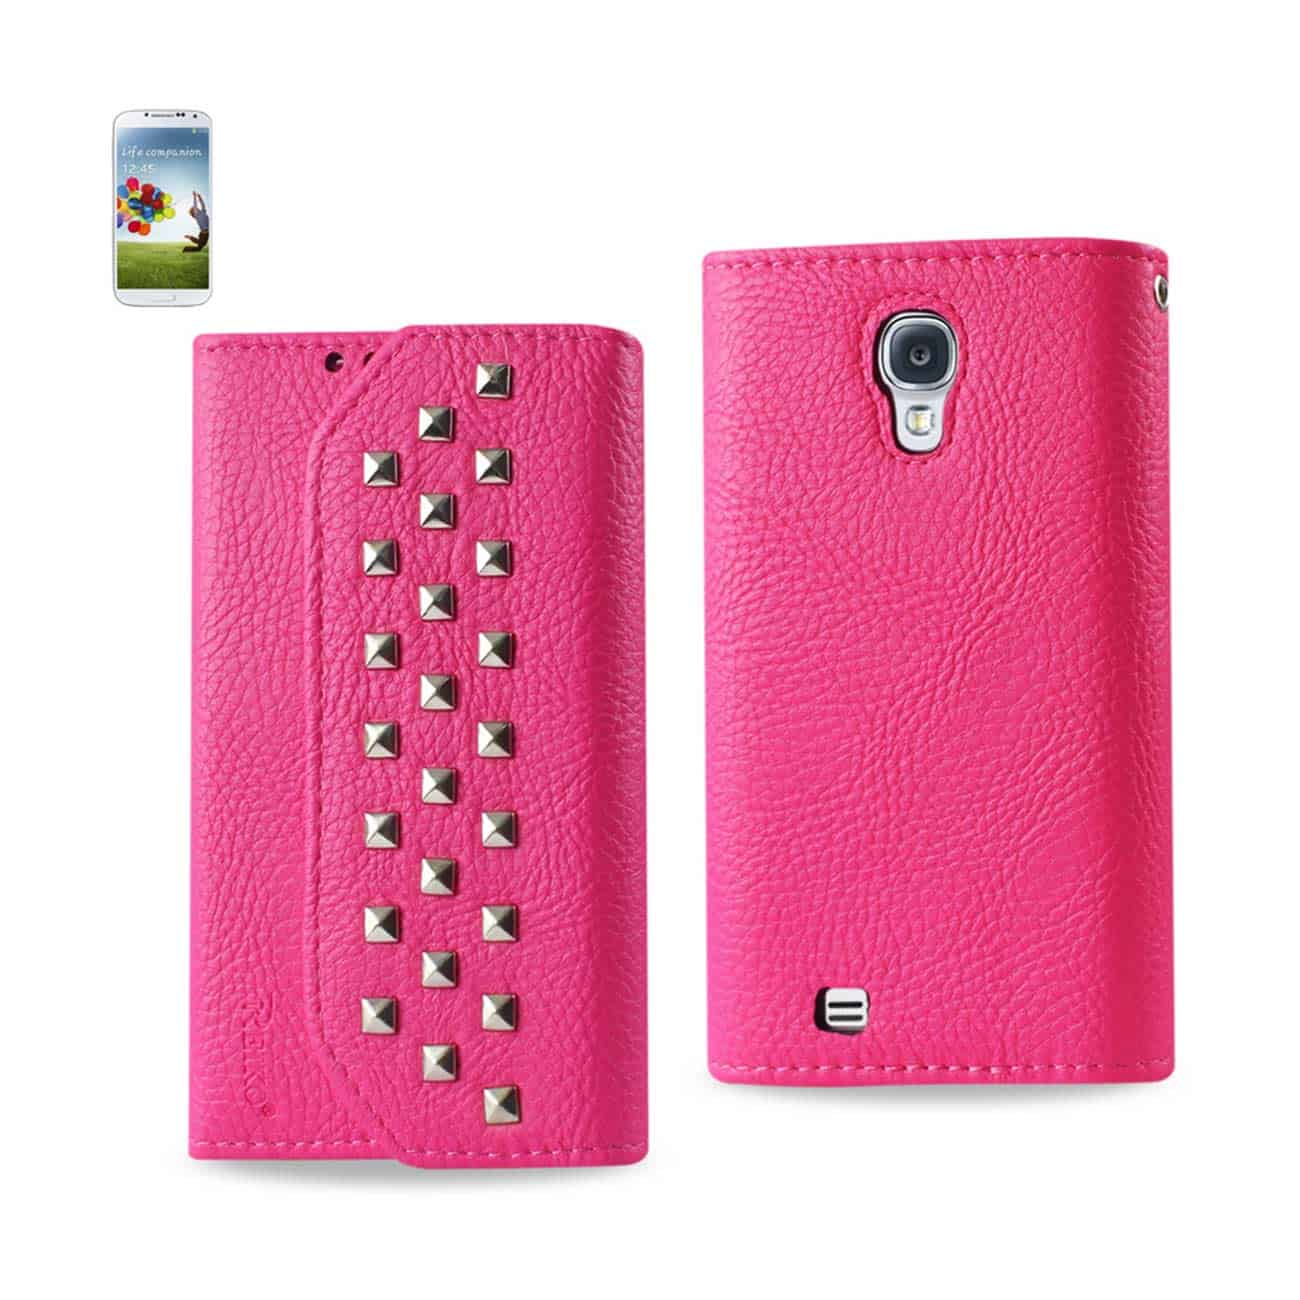 SAMSUNG GALAXY S4 STUDS WALLET CASE IN HOT PINK